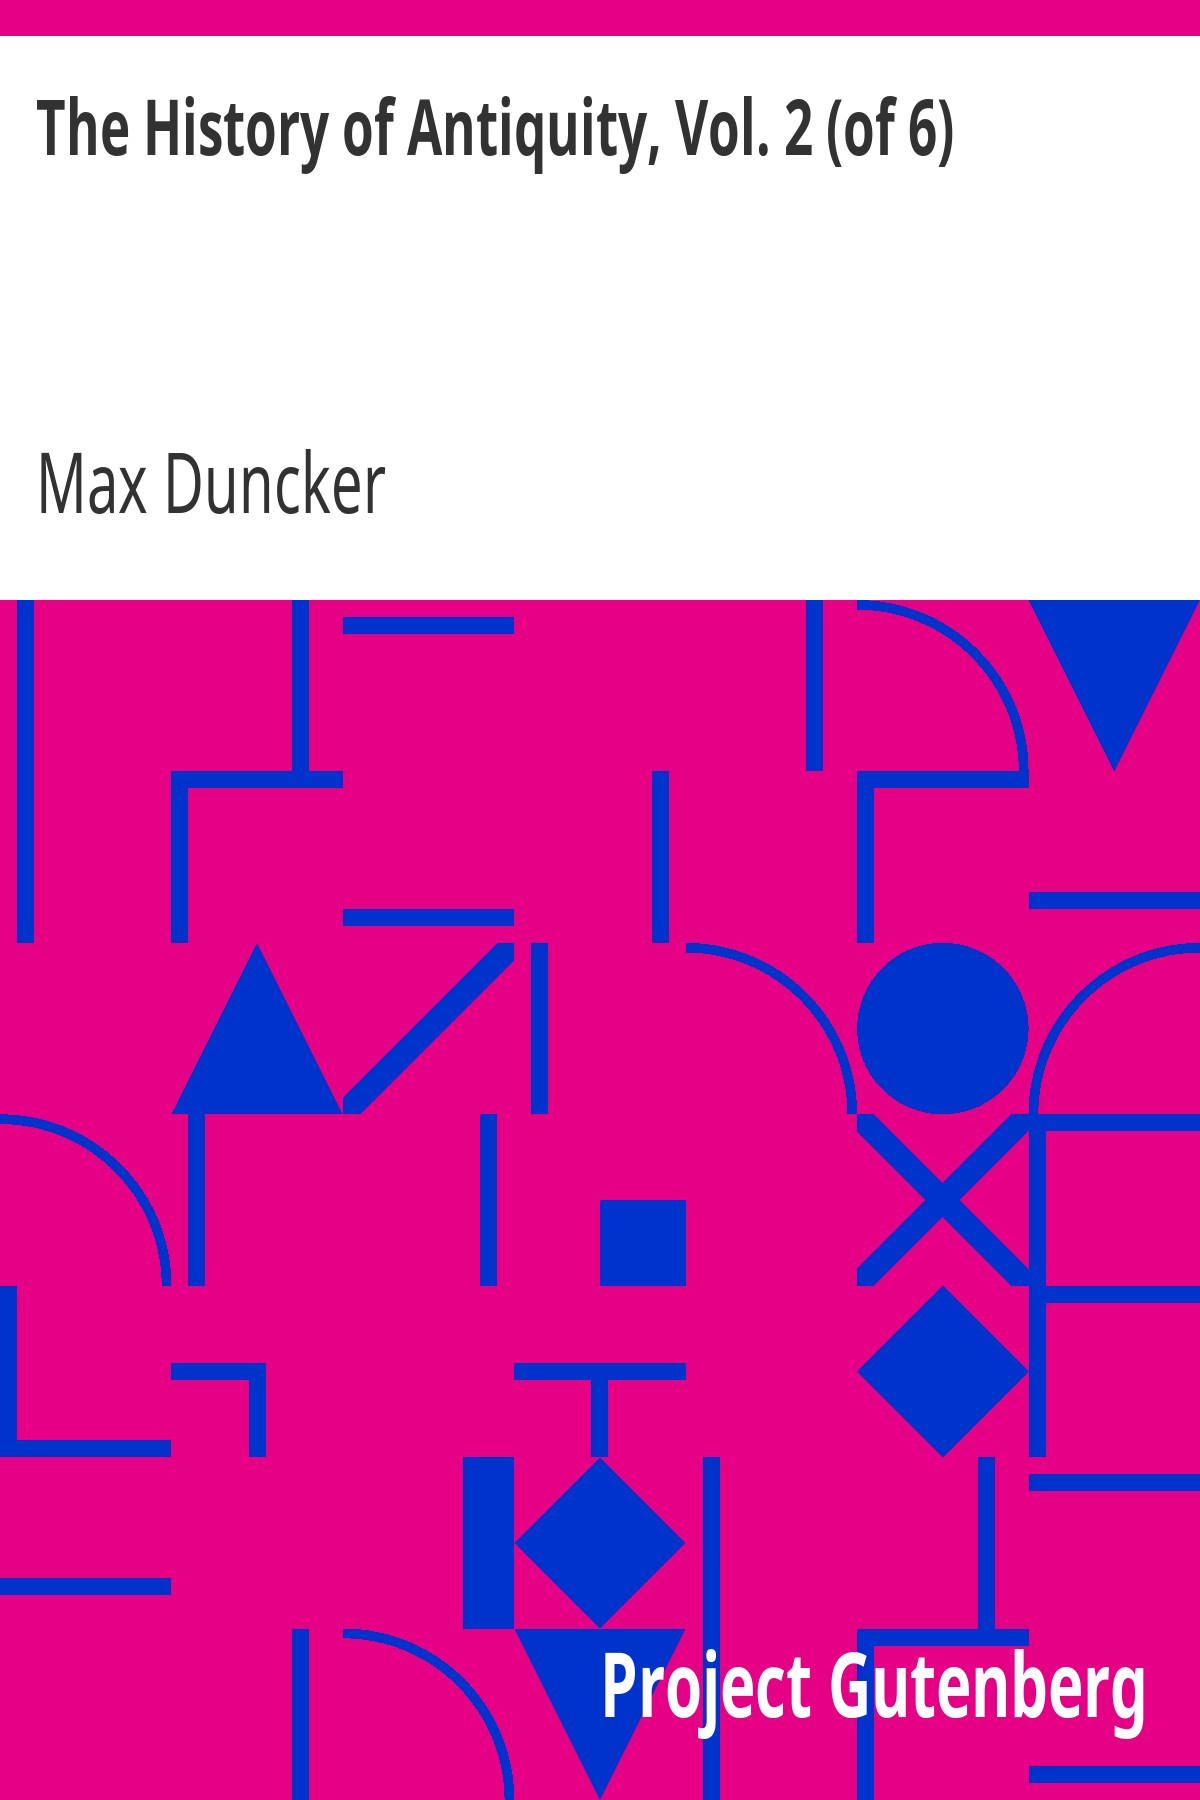 Max Duncker The History of Antiquity, Vol. 2 (of 6)